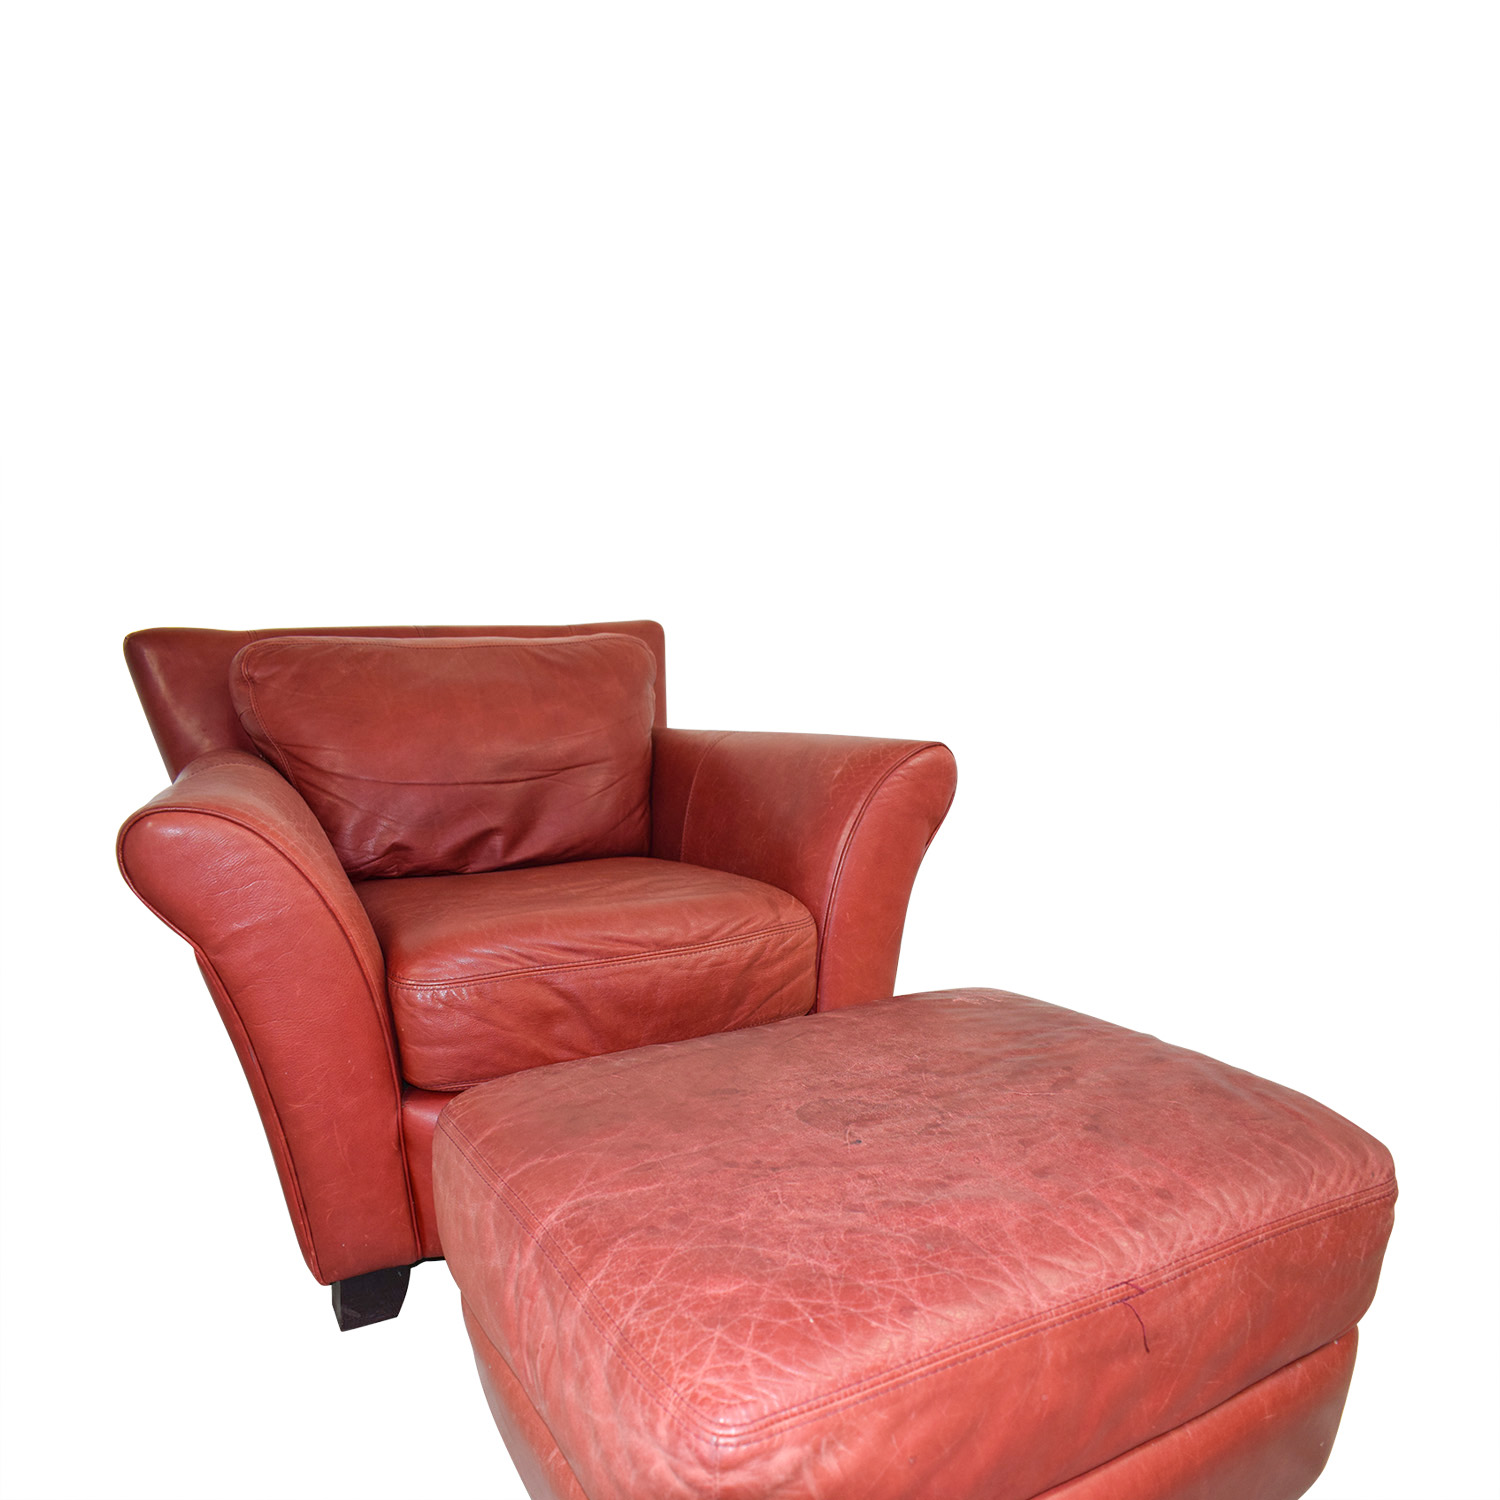 Palliser Palliser Red Leather Chair and Ottoman price